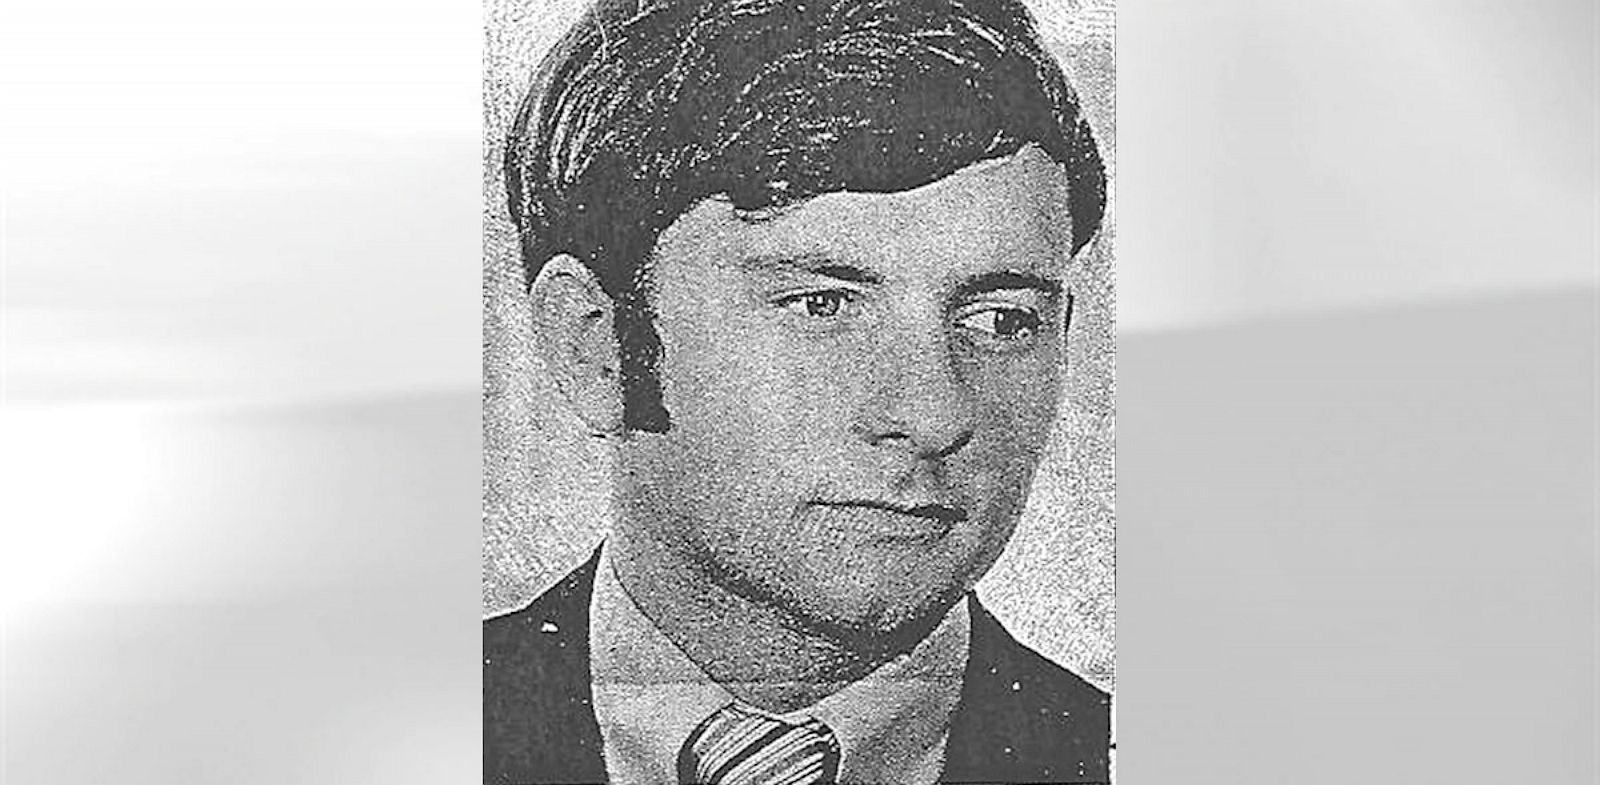 PHOTO: Dr. Scott Harrington is shown in this 1977 license picture provided by the Oklahoma Board of Dentistry.